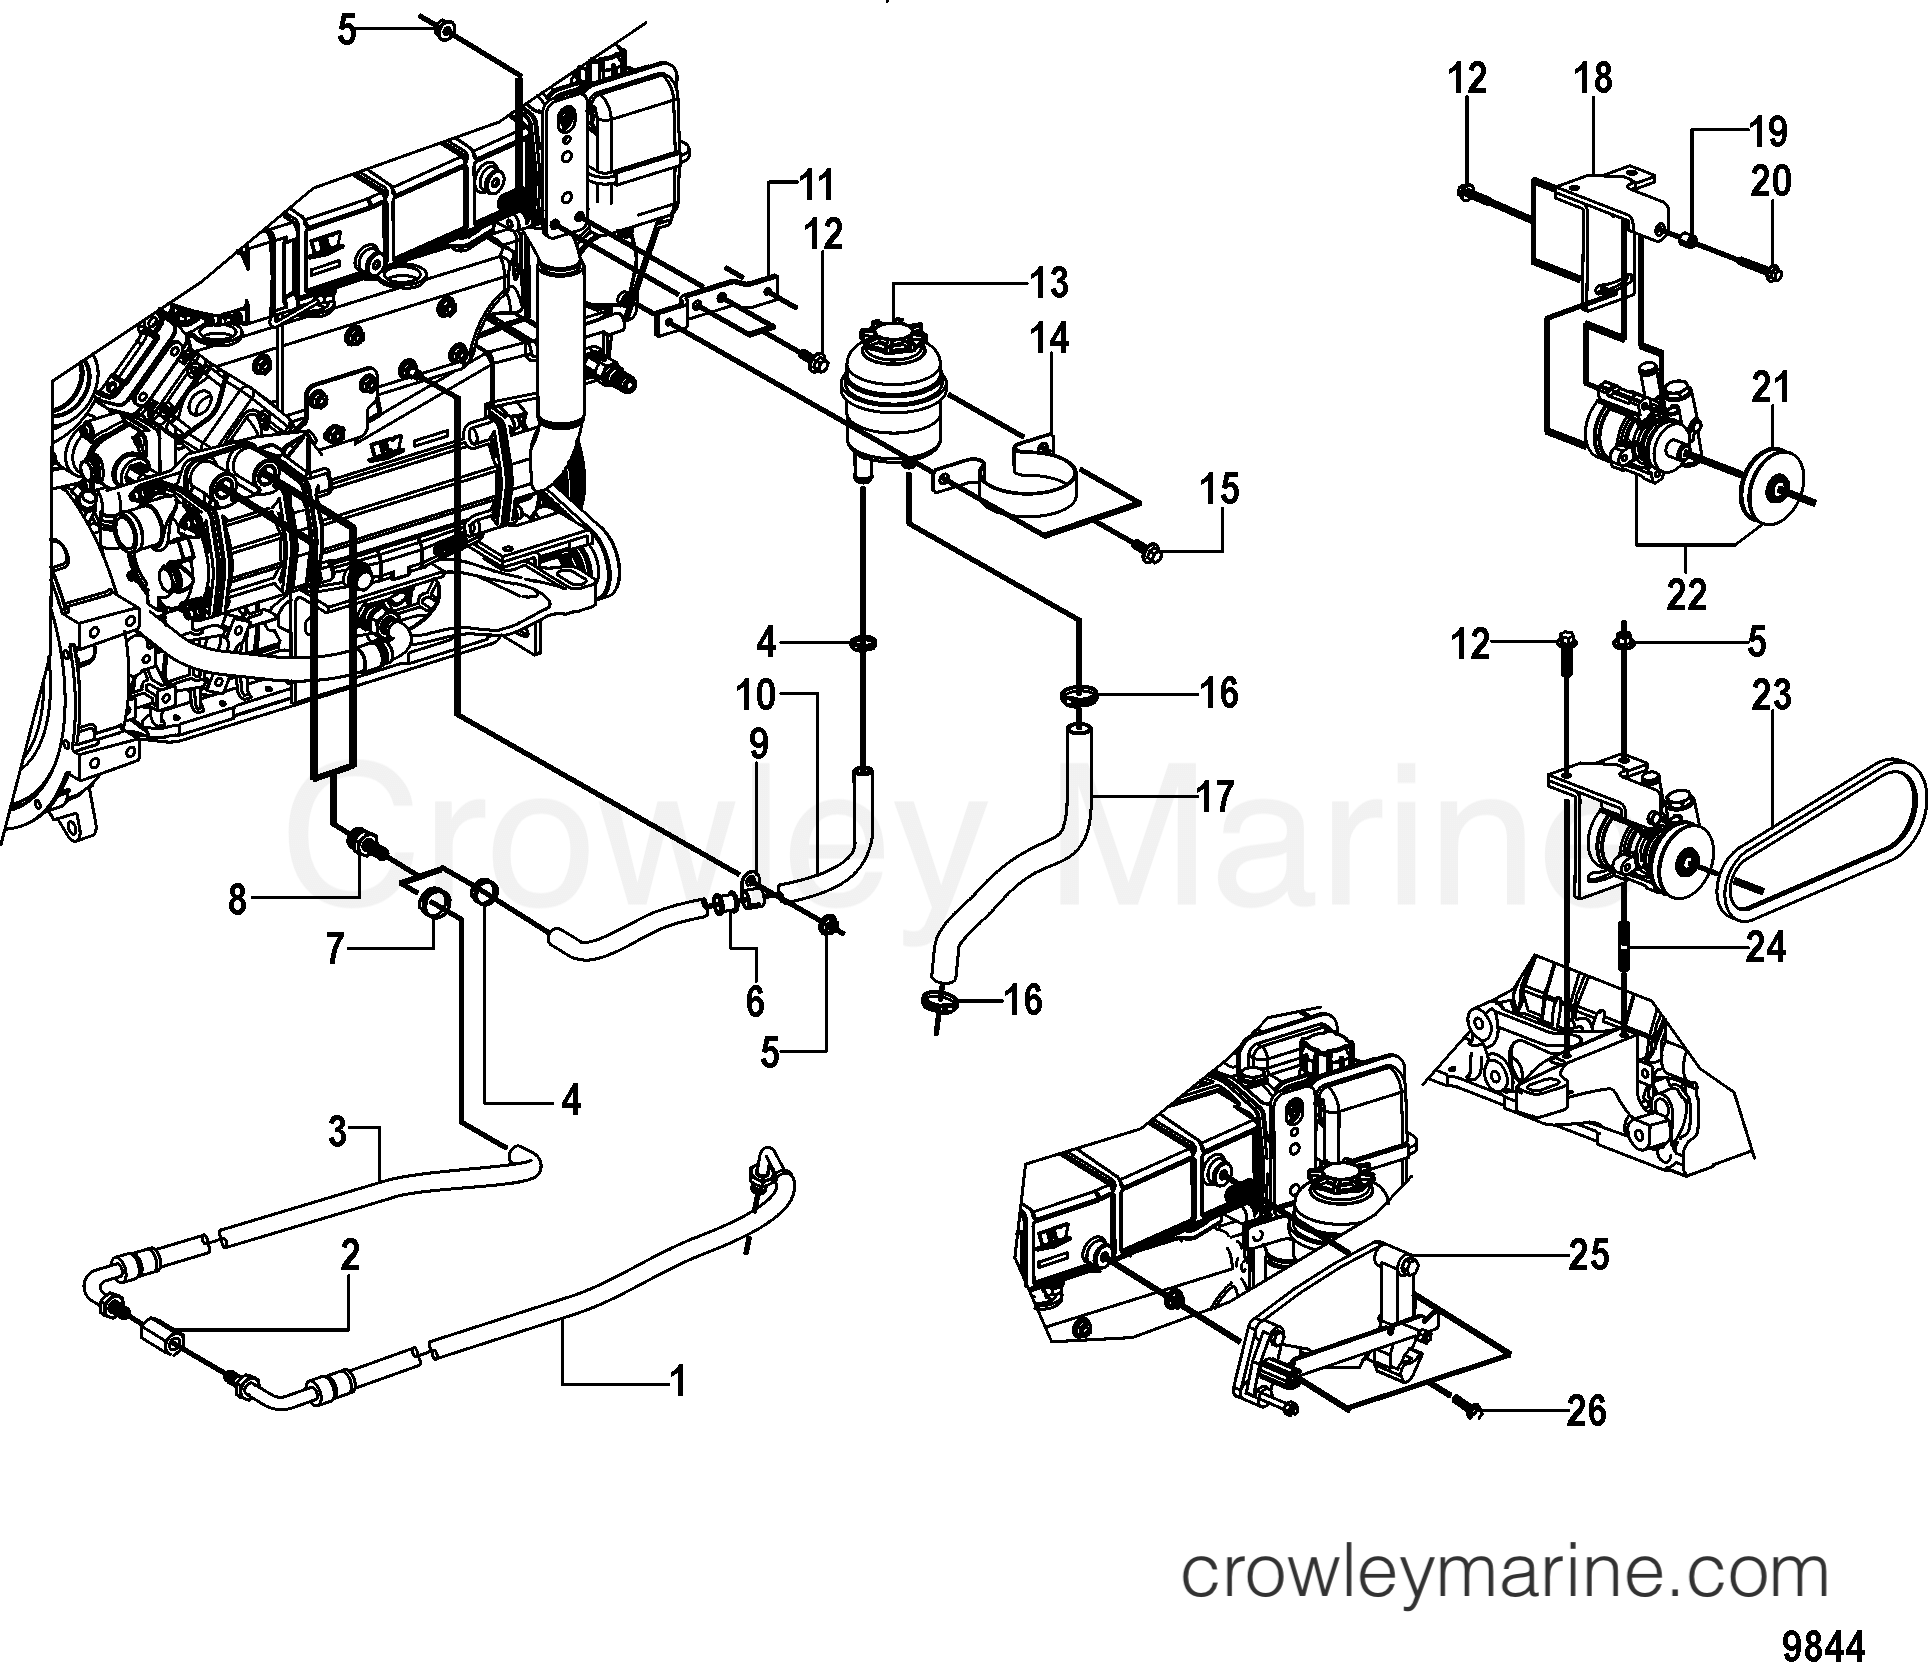 Power Steering And Shift Bracket